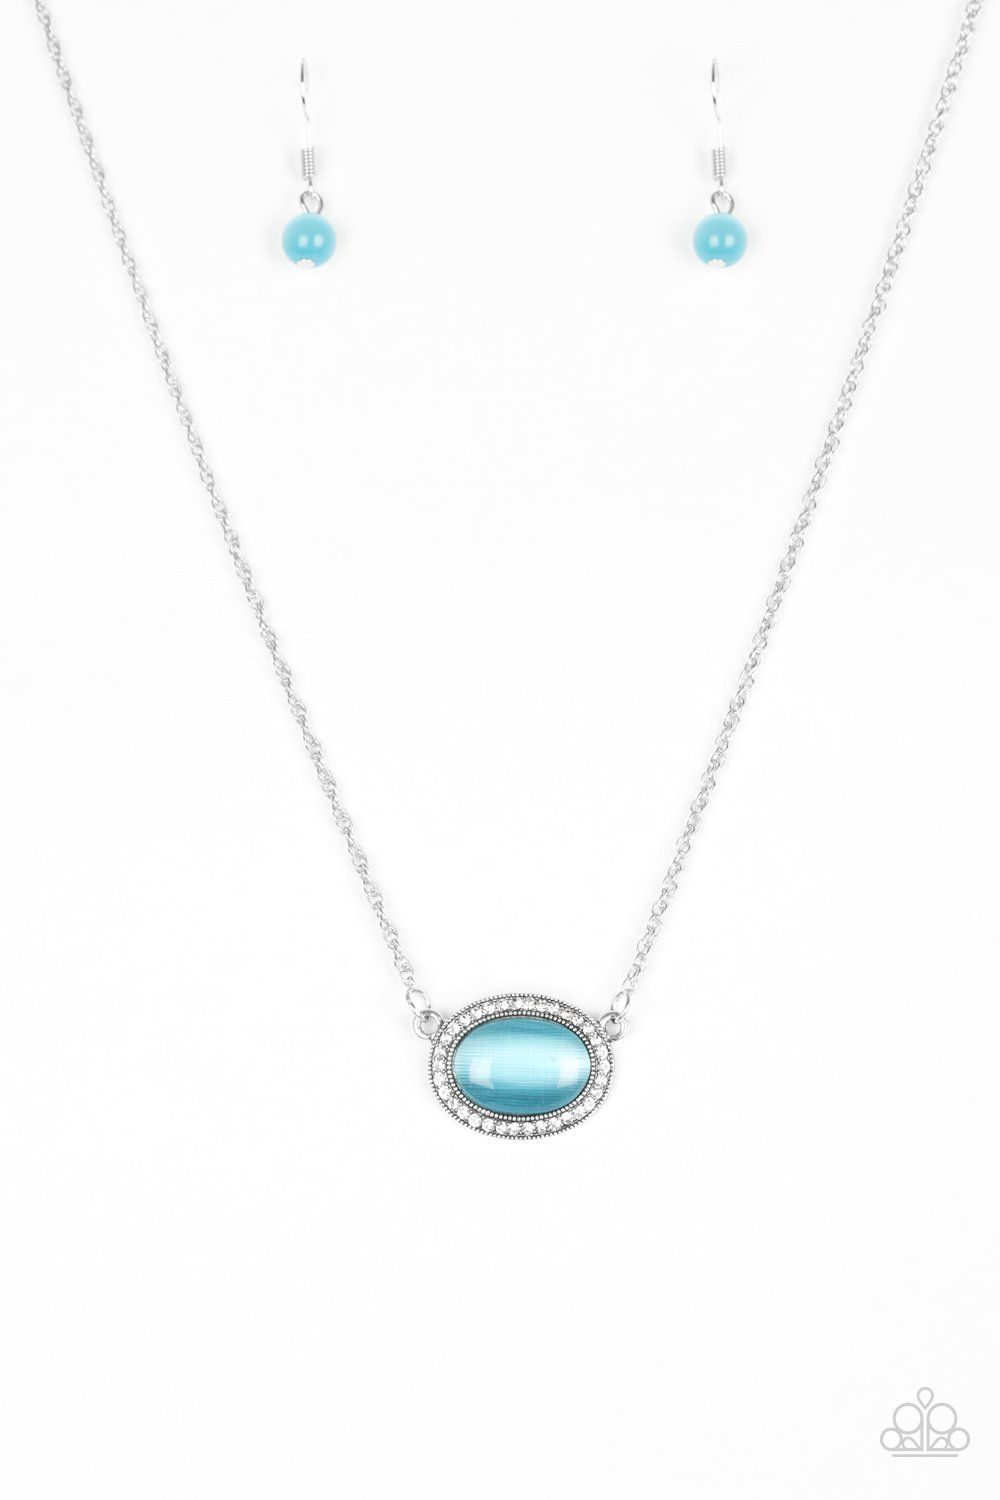 Paparazzi anything glows blue moonstone necklace and earring set